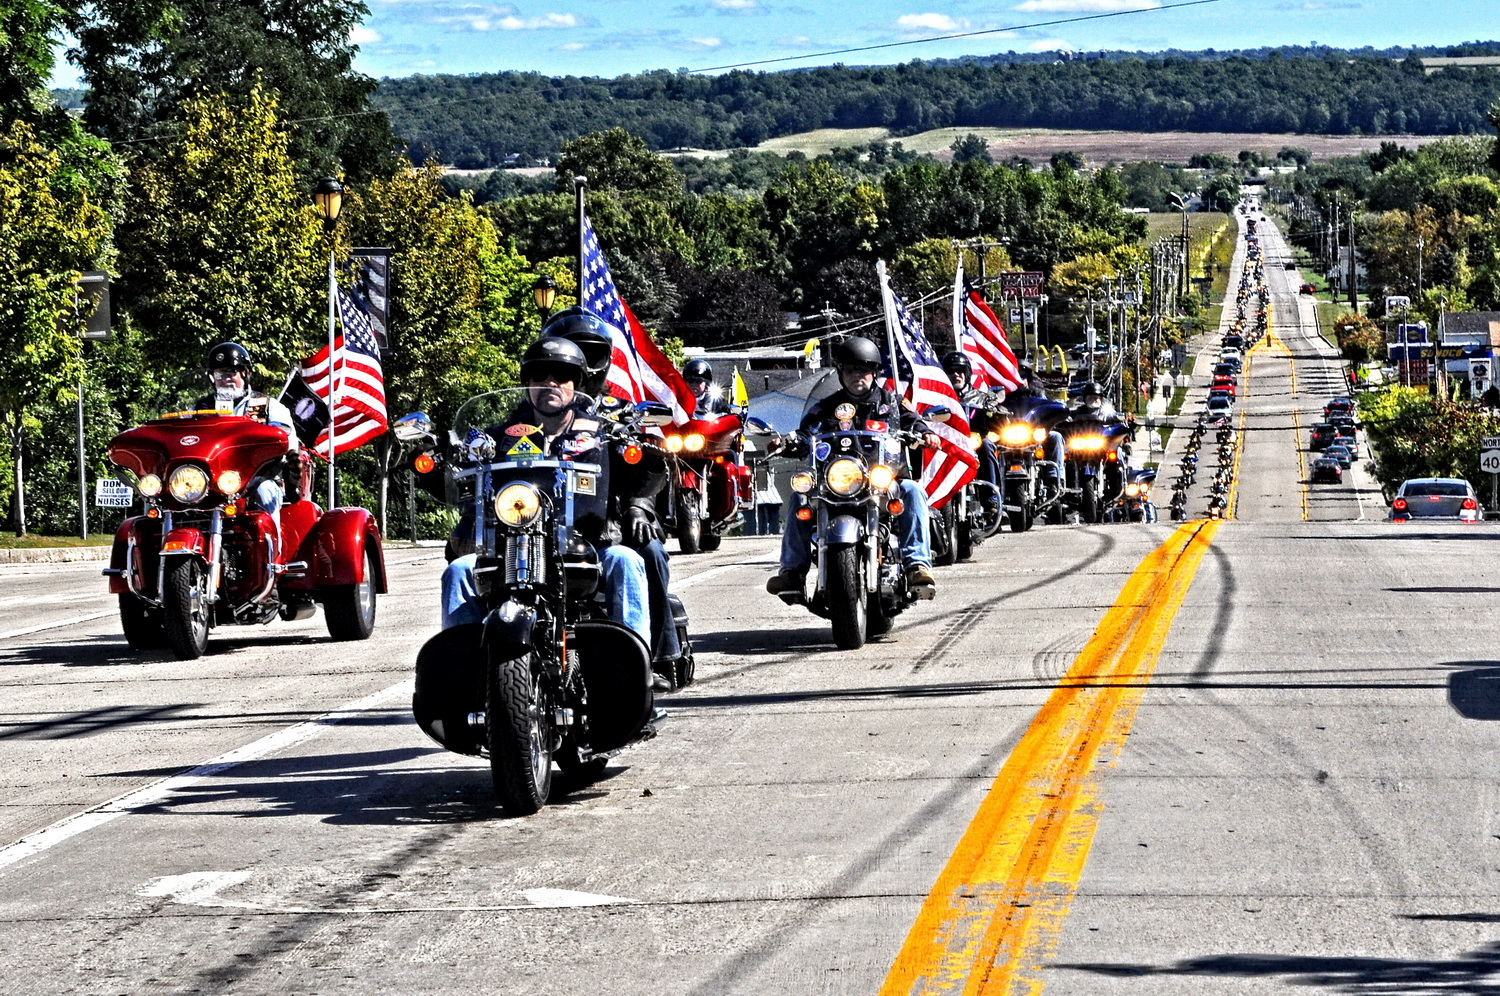 Solemn Tribute by Patriot Guard for Veterans on Final Journey